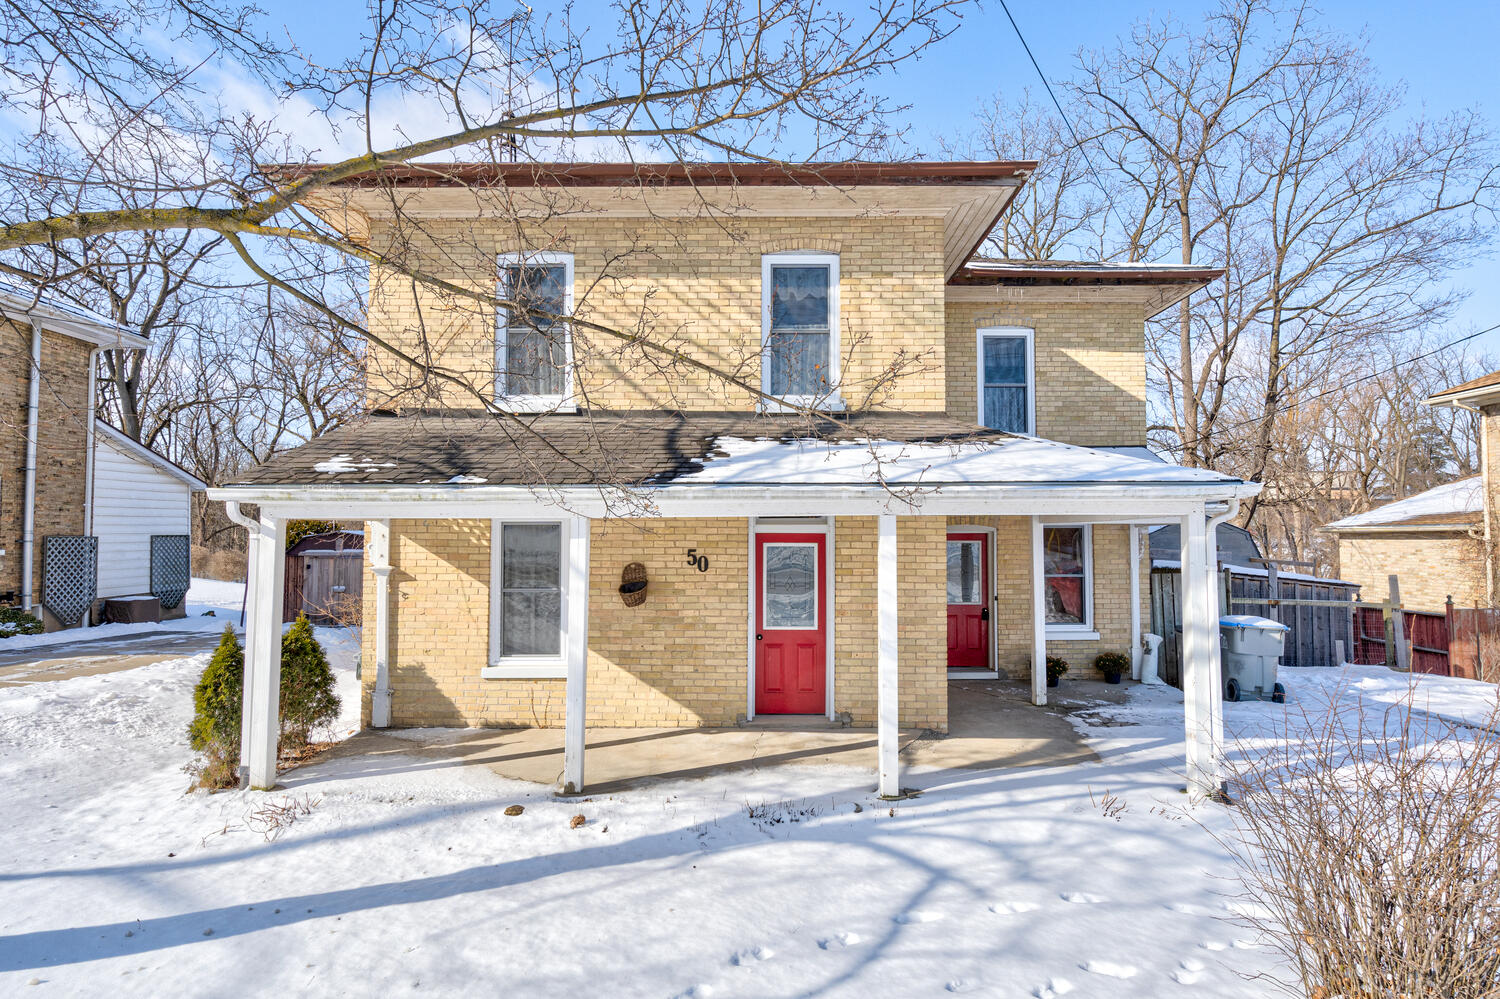 SOLD – 50 Main Street South